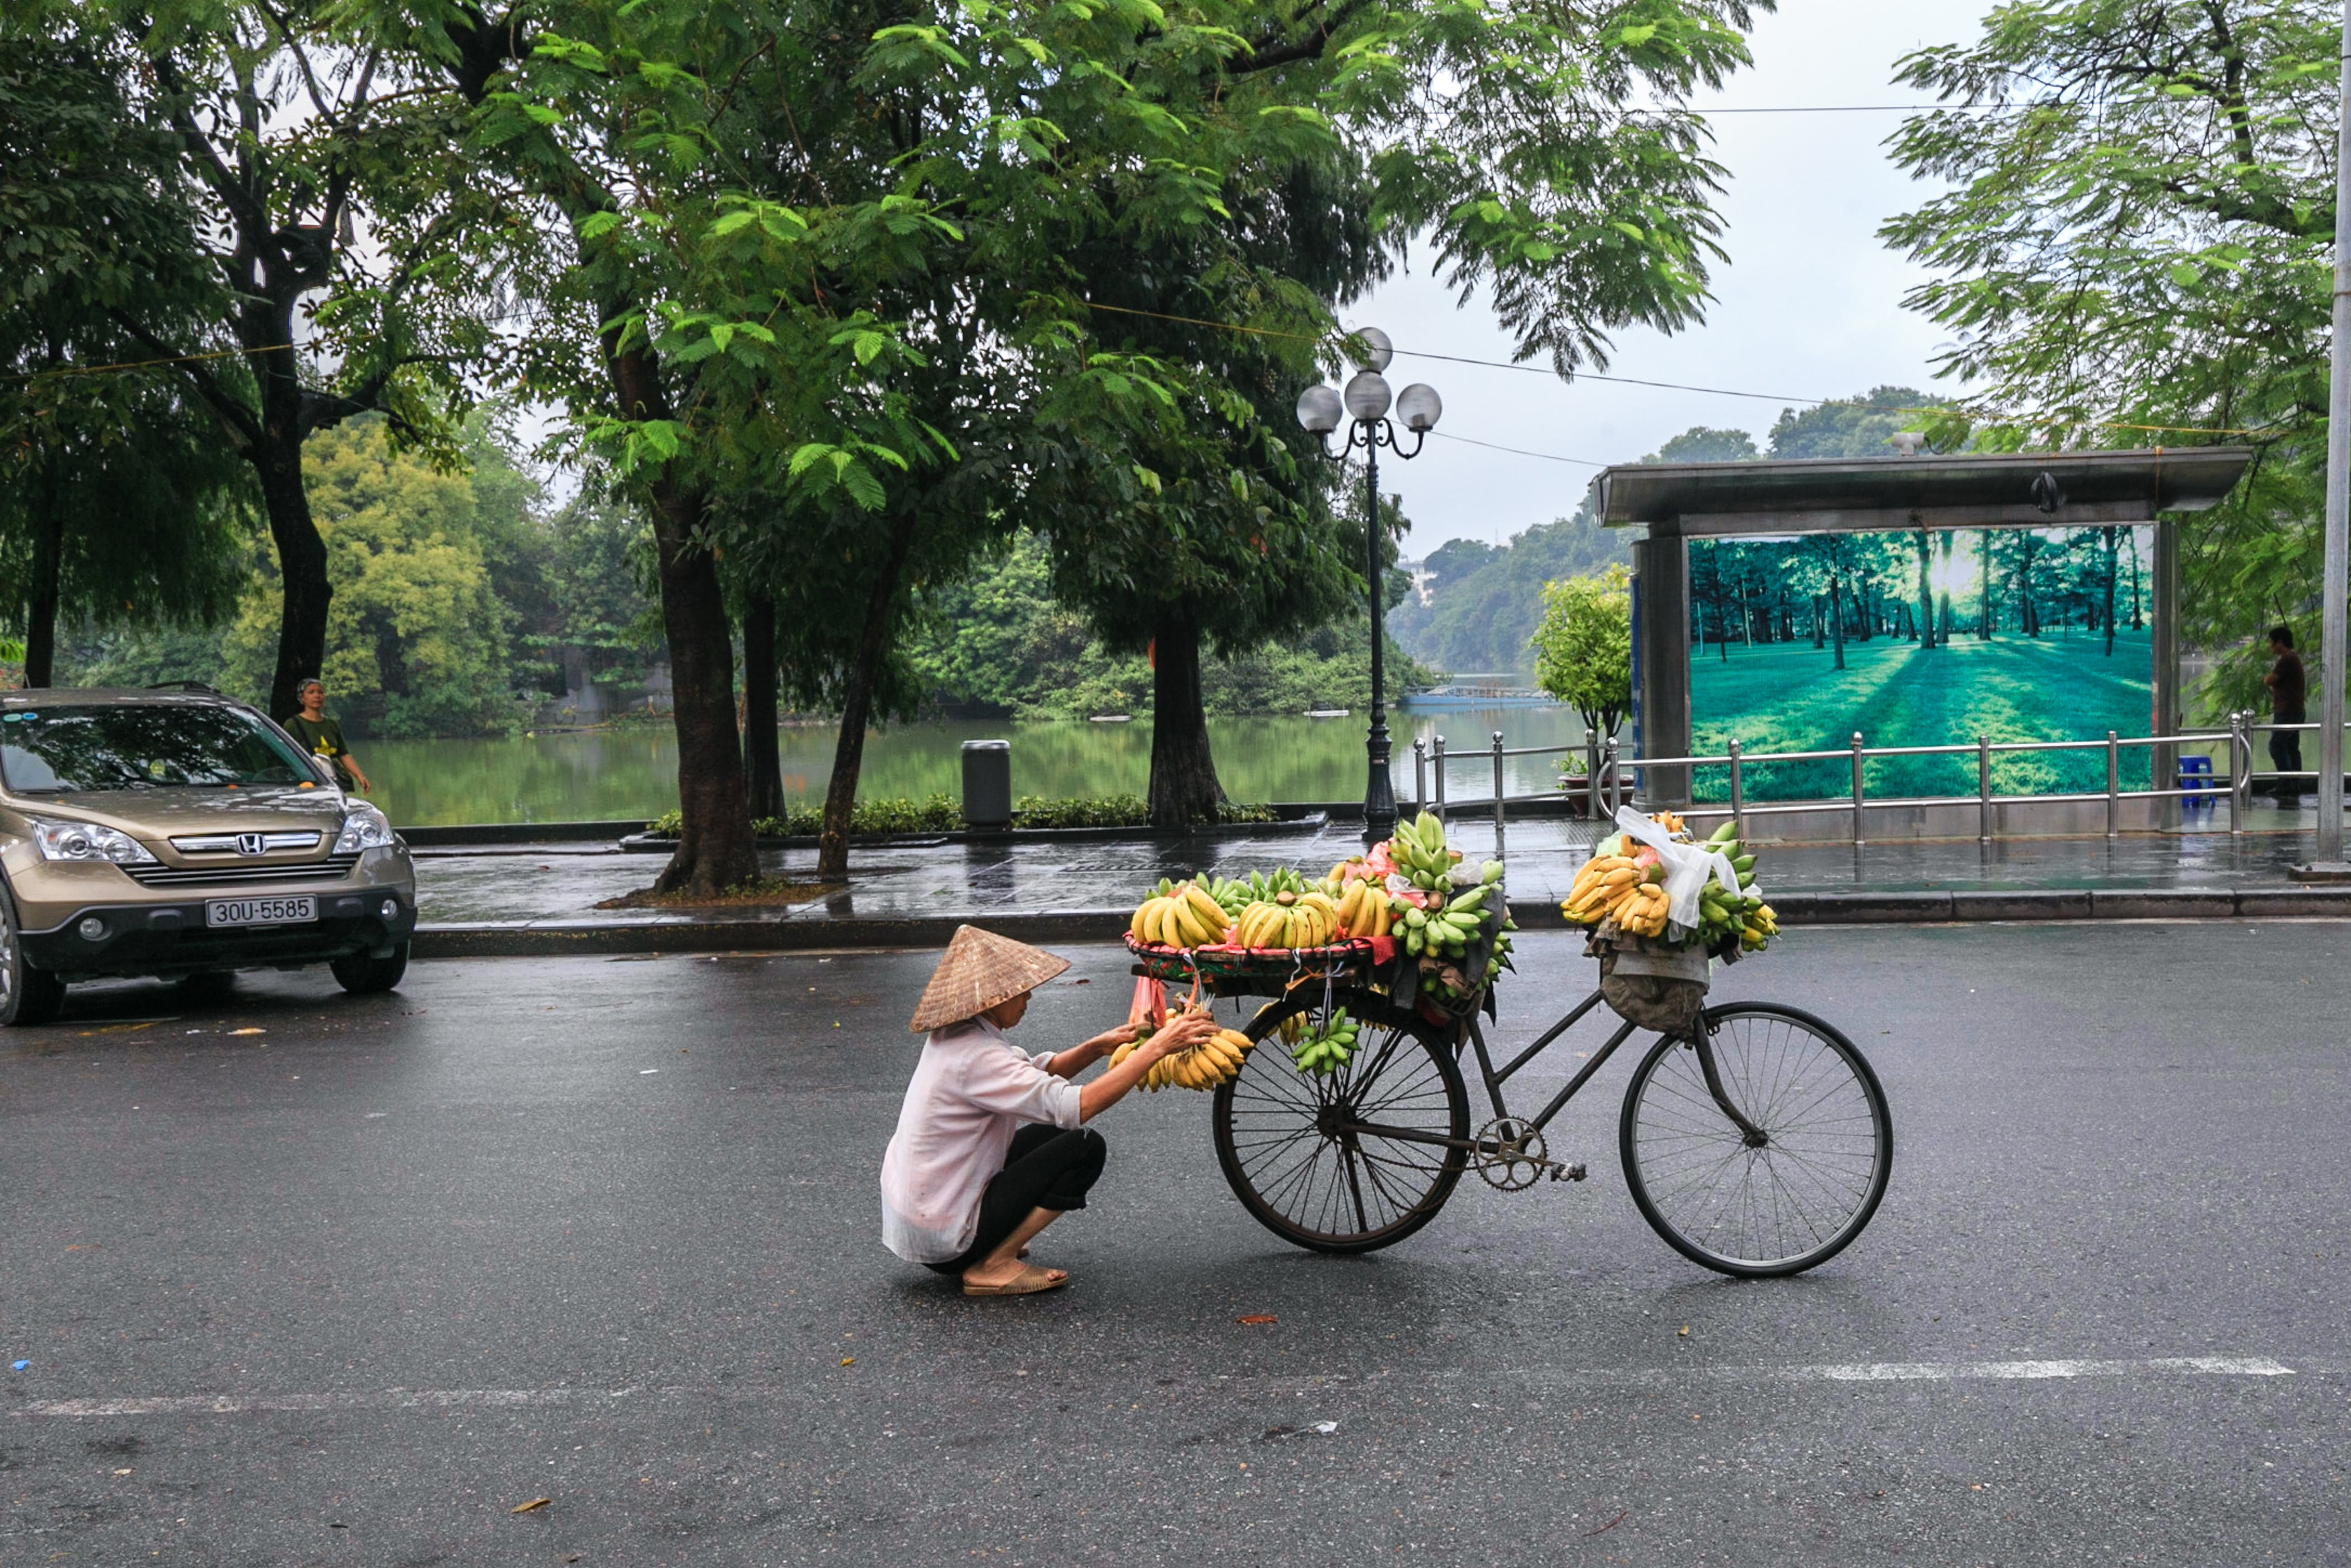 Person Sitting Near Bicycle With Fruits